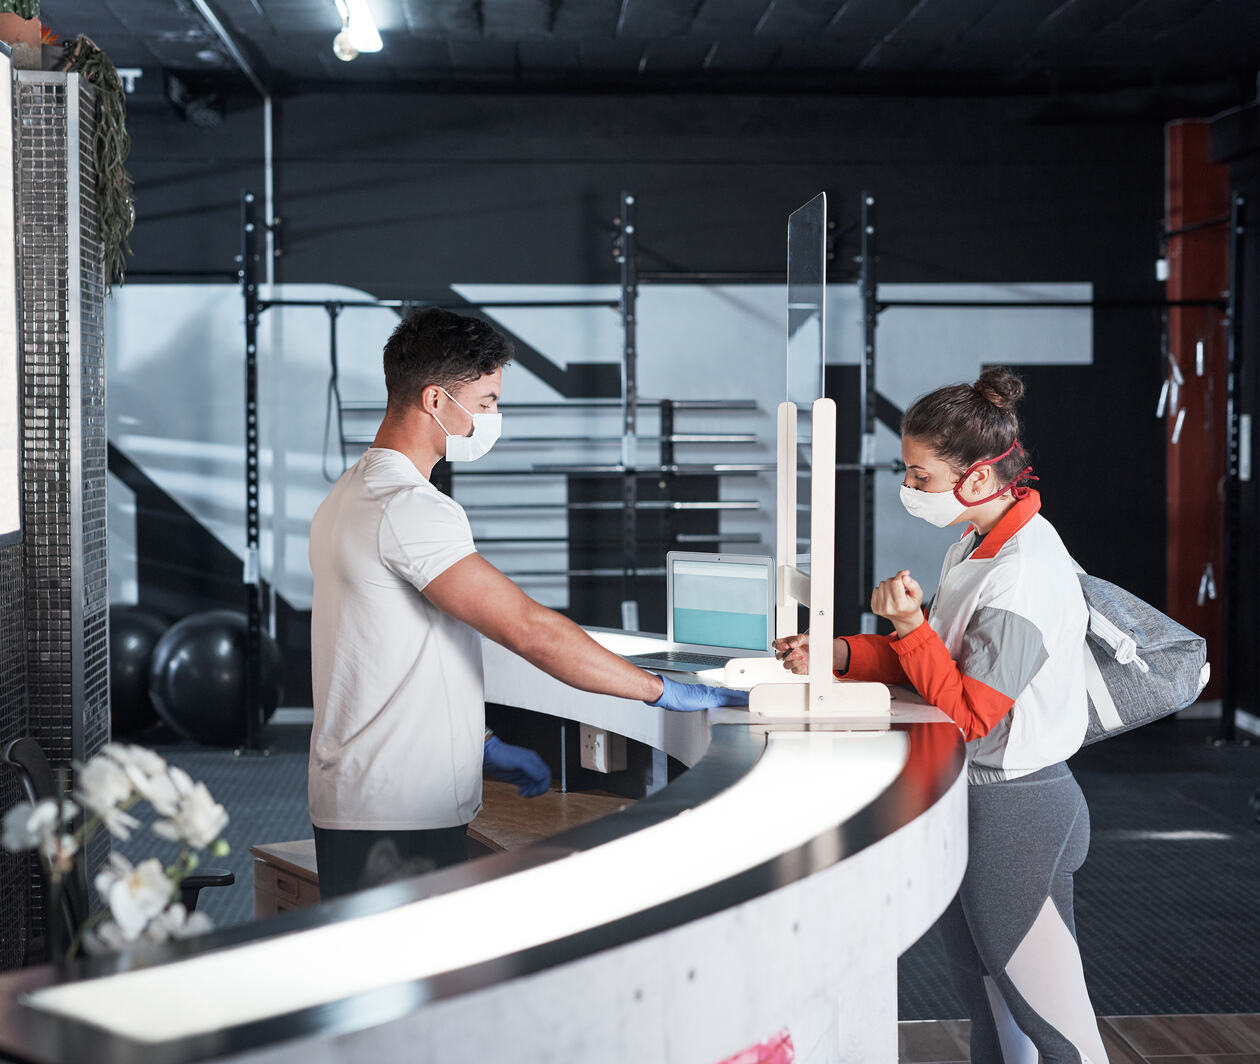 Personal Trainer's Toolkit: Workplace Health and Safety in a Fitness Setting